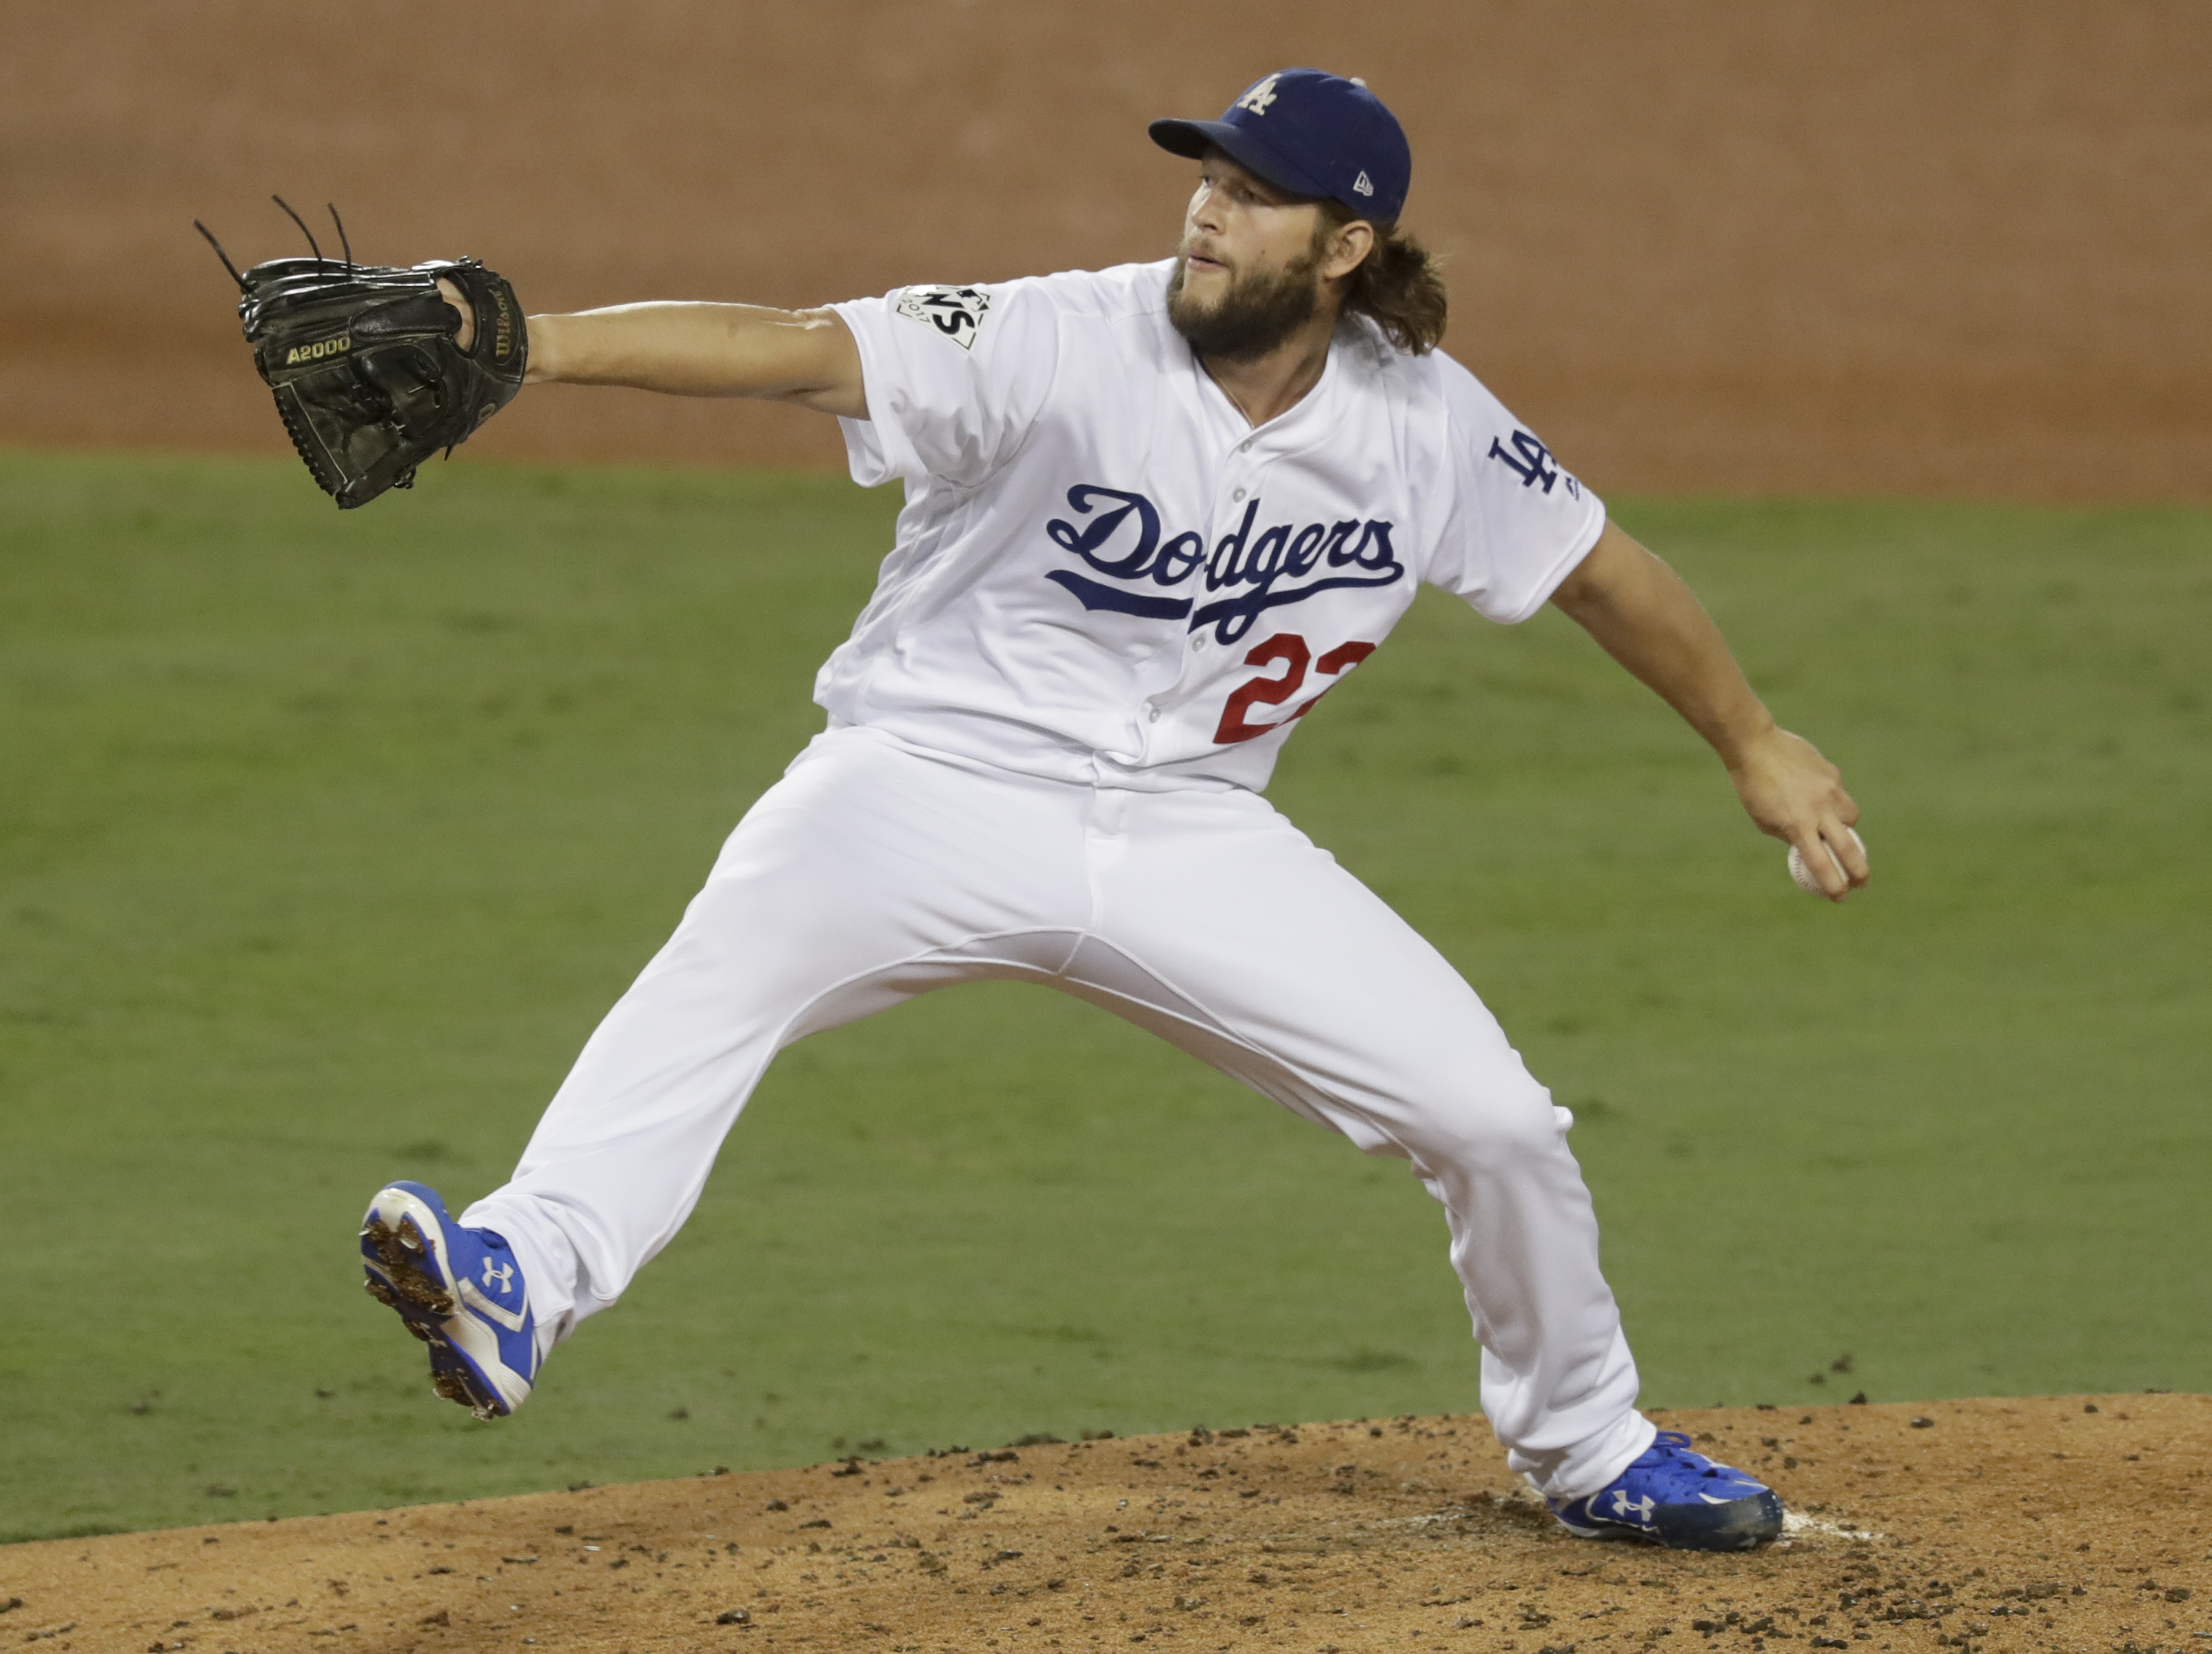 Los Angeles Dodgers starting pitcher Clayton Kershaw throws against the Houston Astros during the third inning of Game 7 of baseballs World Series Wednesday, Nov. 1, 2017.